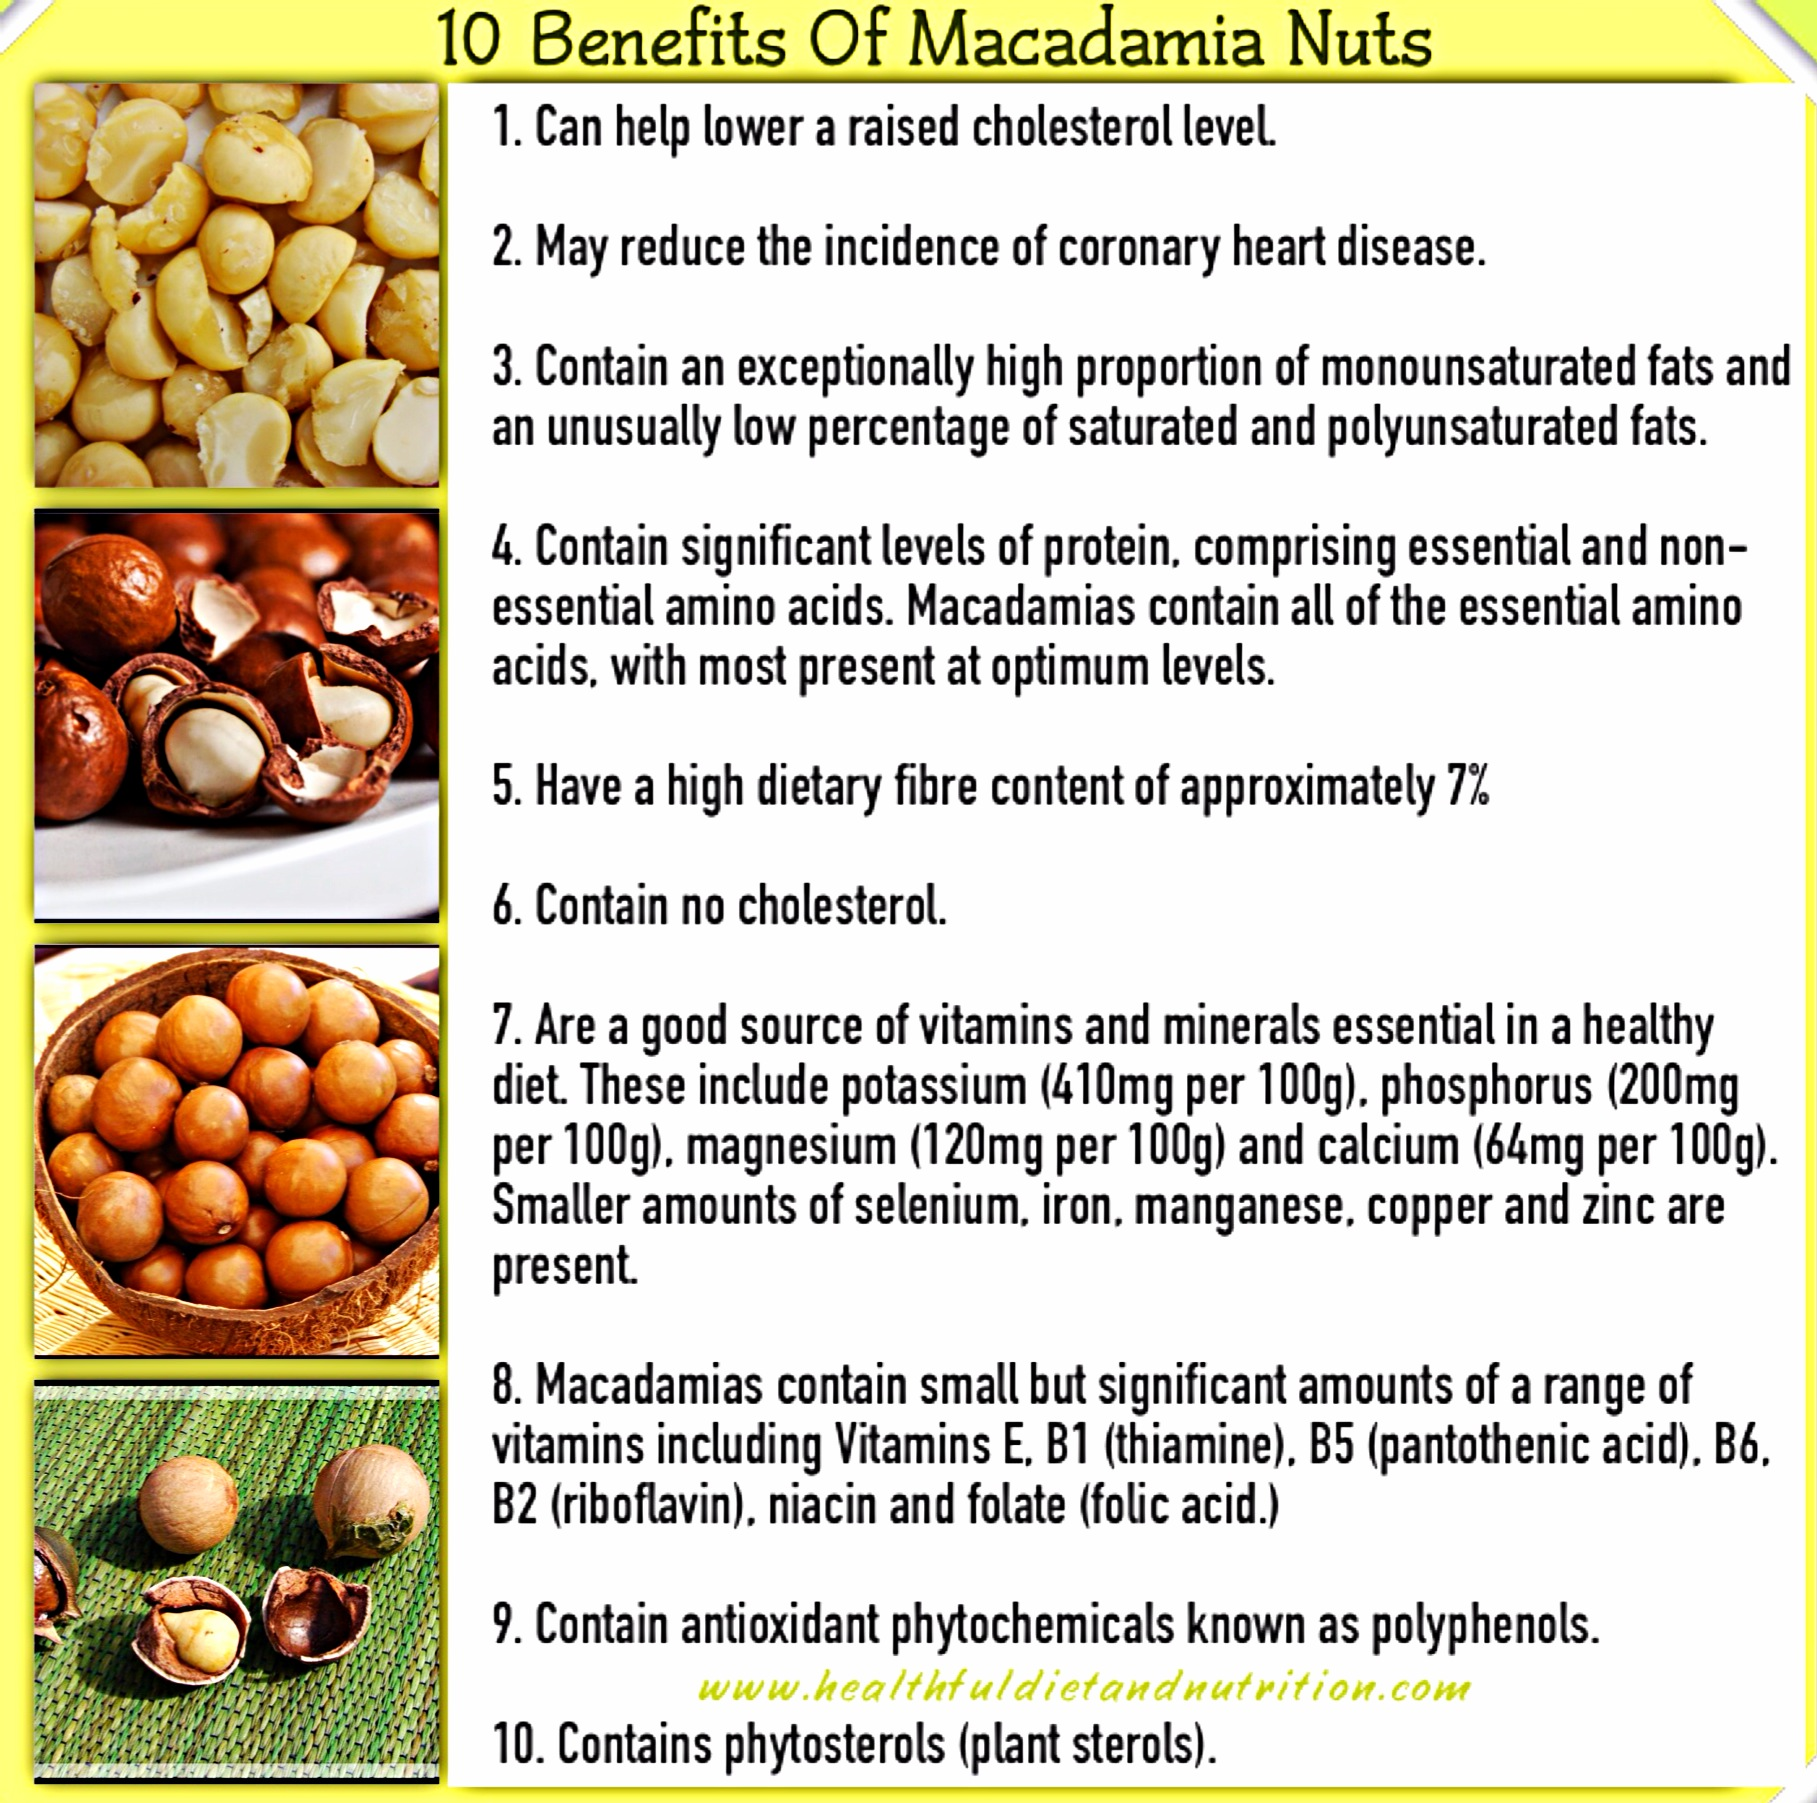 10 Benefits of Macadamia Nuts